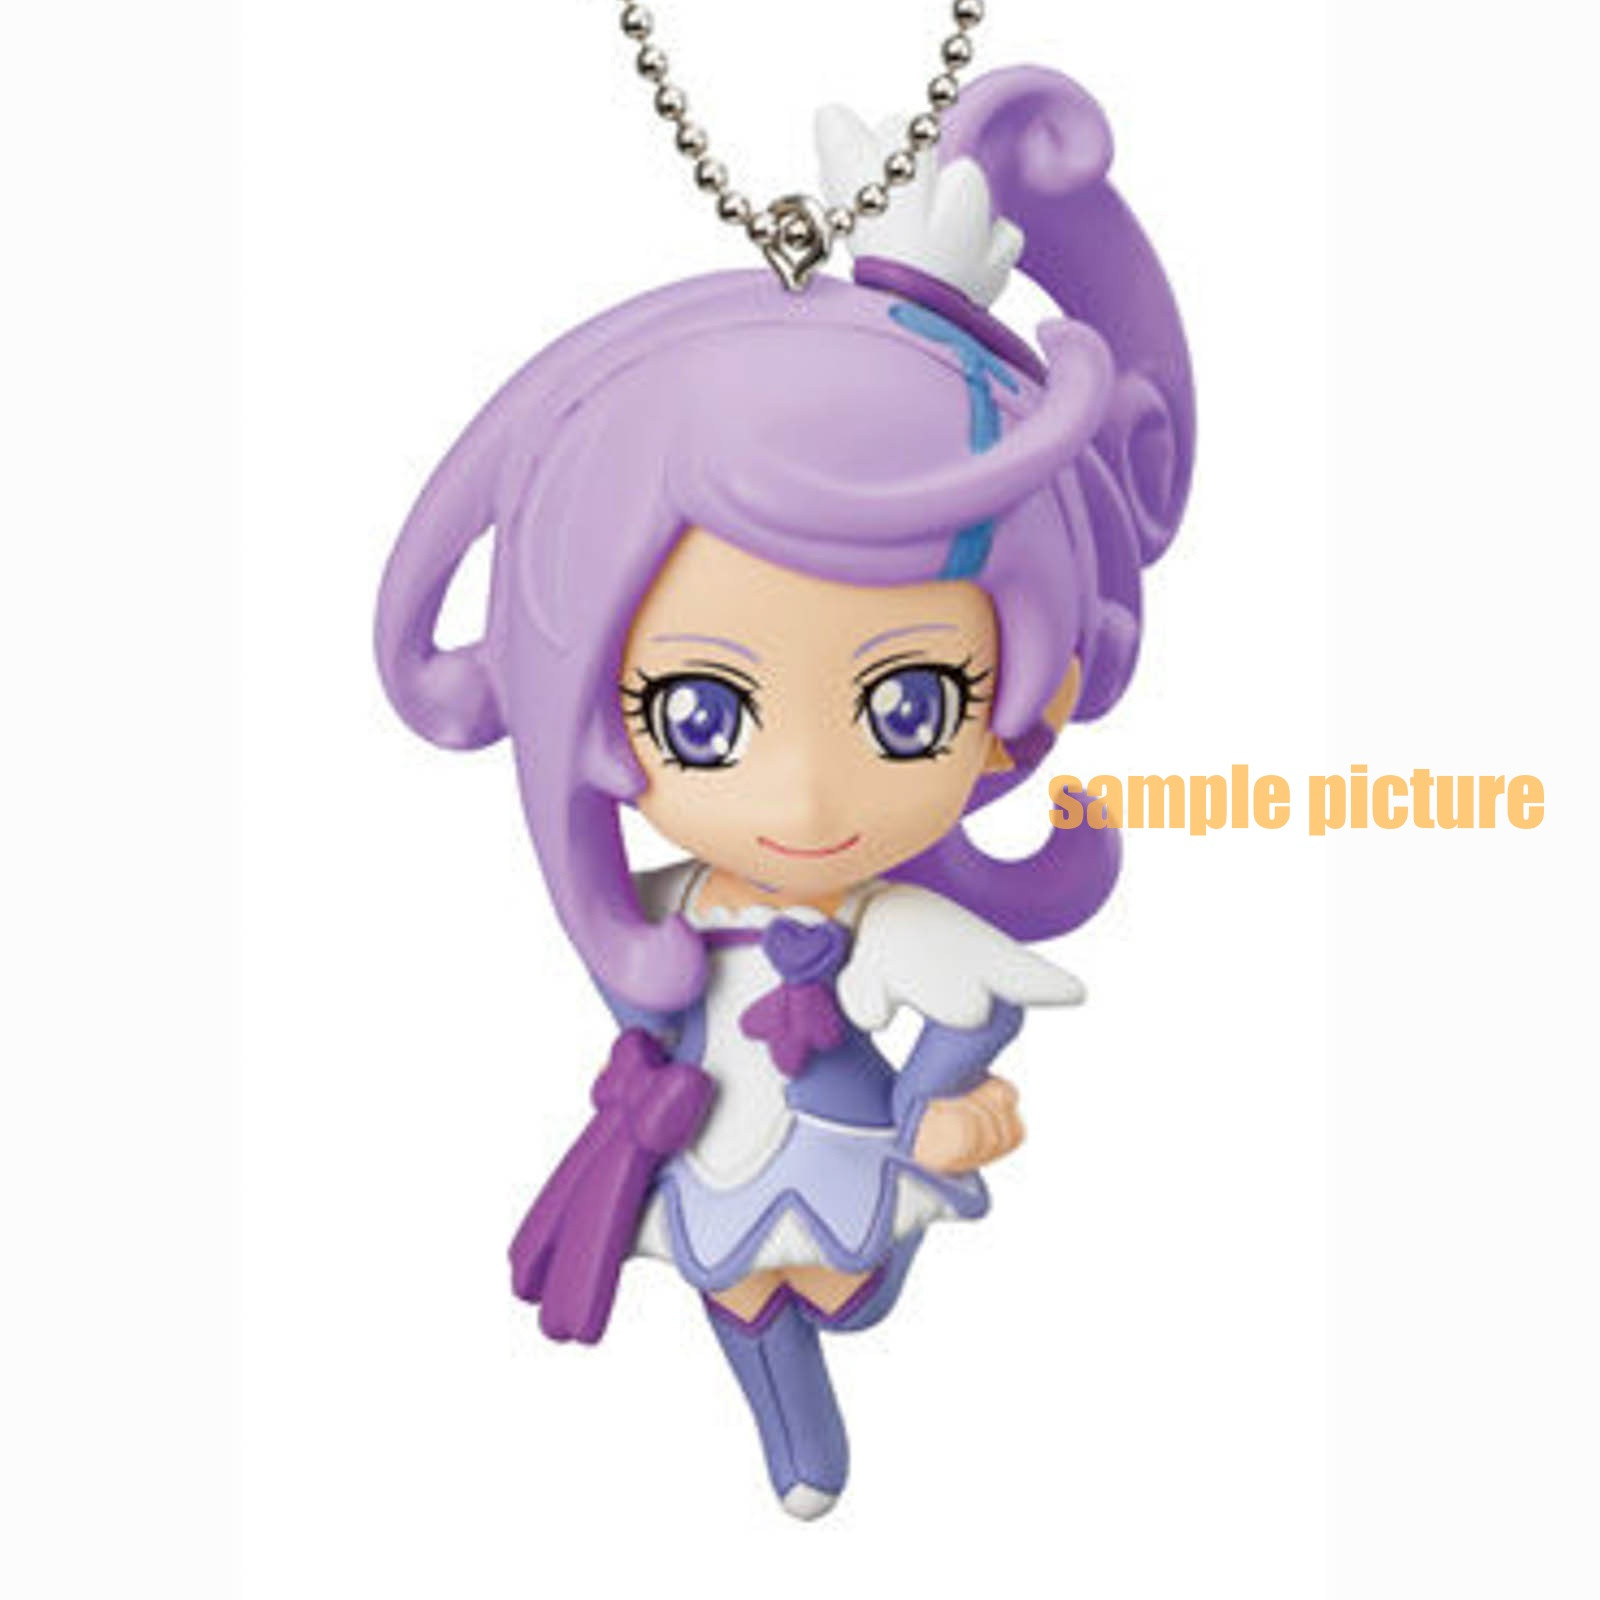 Doki Doki! PreCure Cure Sword Mascot Figure Ball Keychain JAPAN ANIME